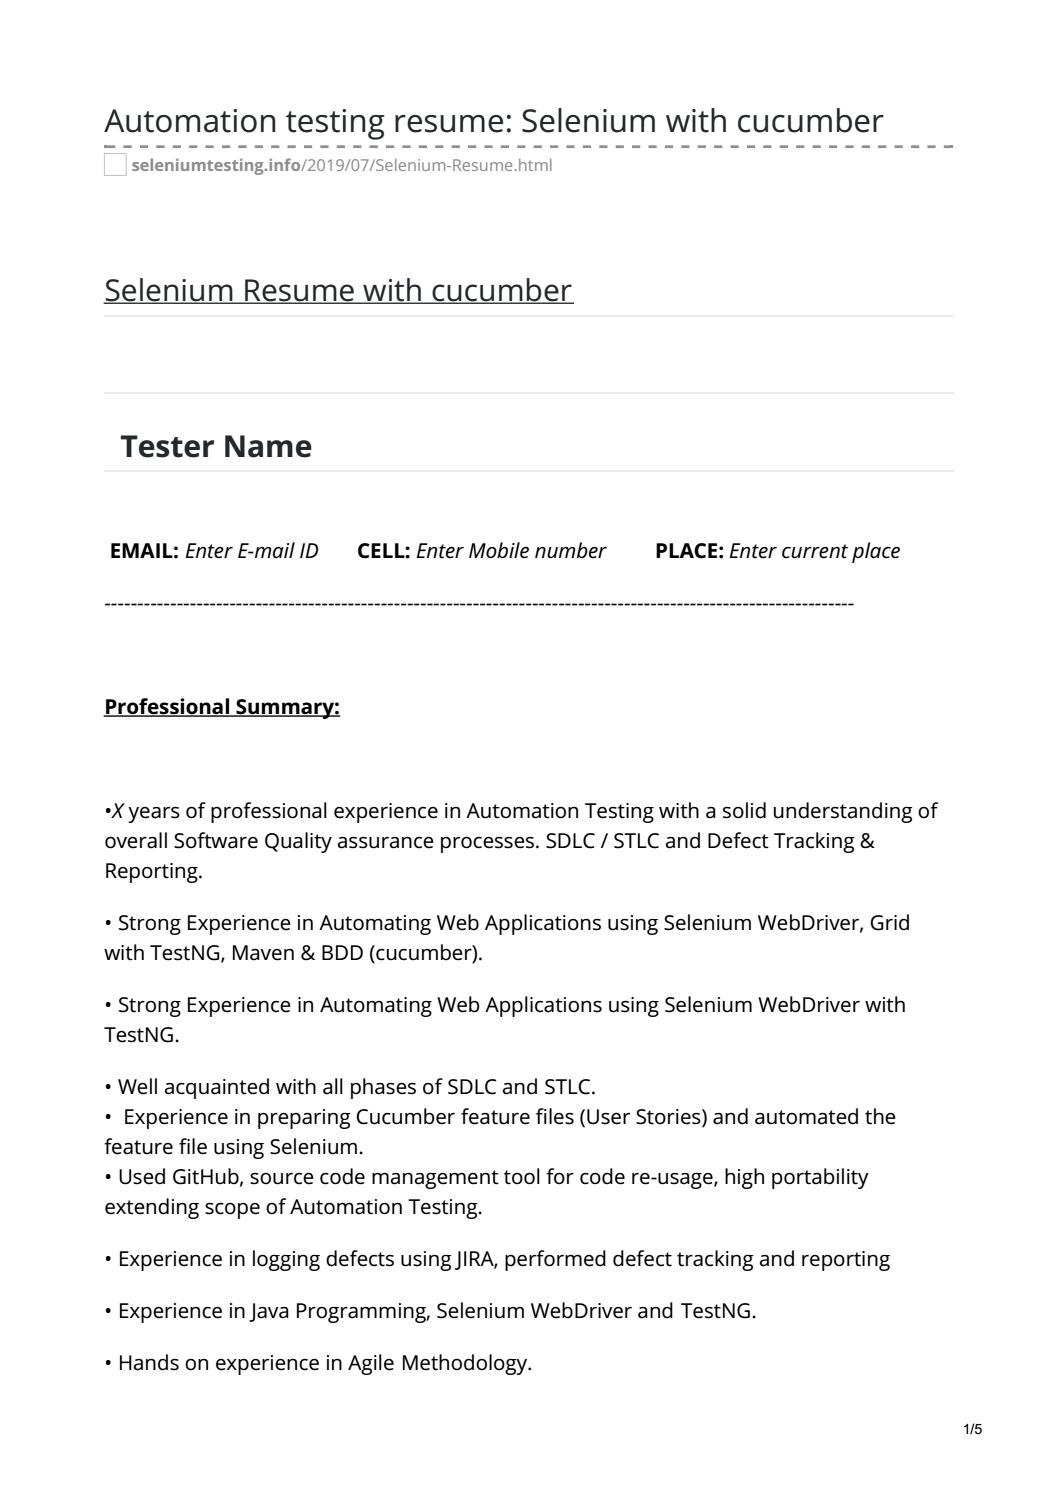 automation testing resume selenium with cucumber by manish dangwal issuu for years Resume Selenium Automation Testing Resume For 5 Years Experience